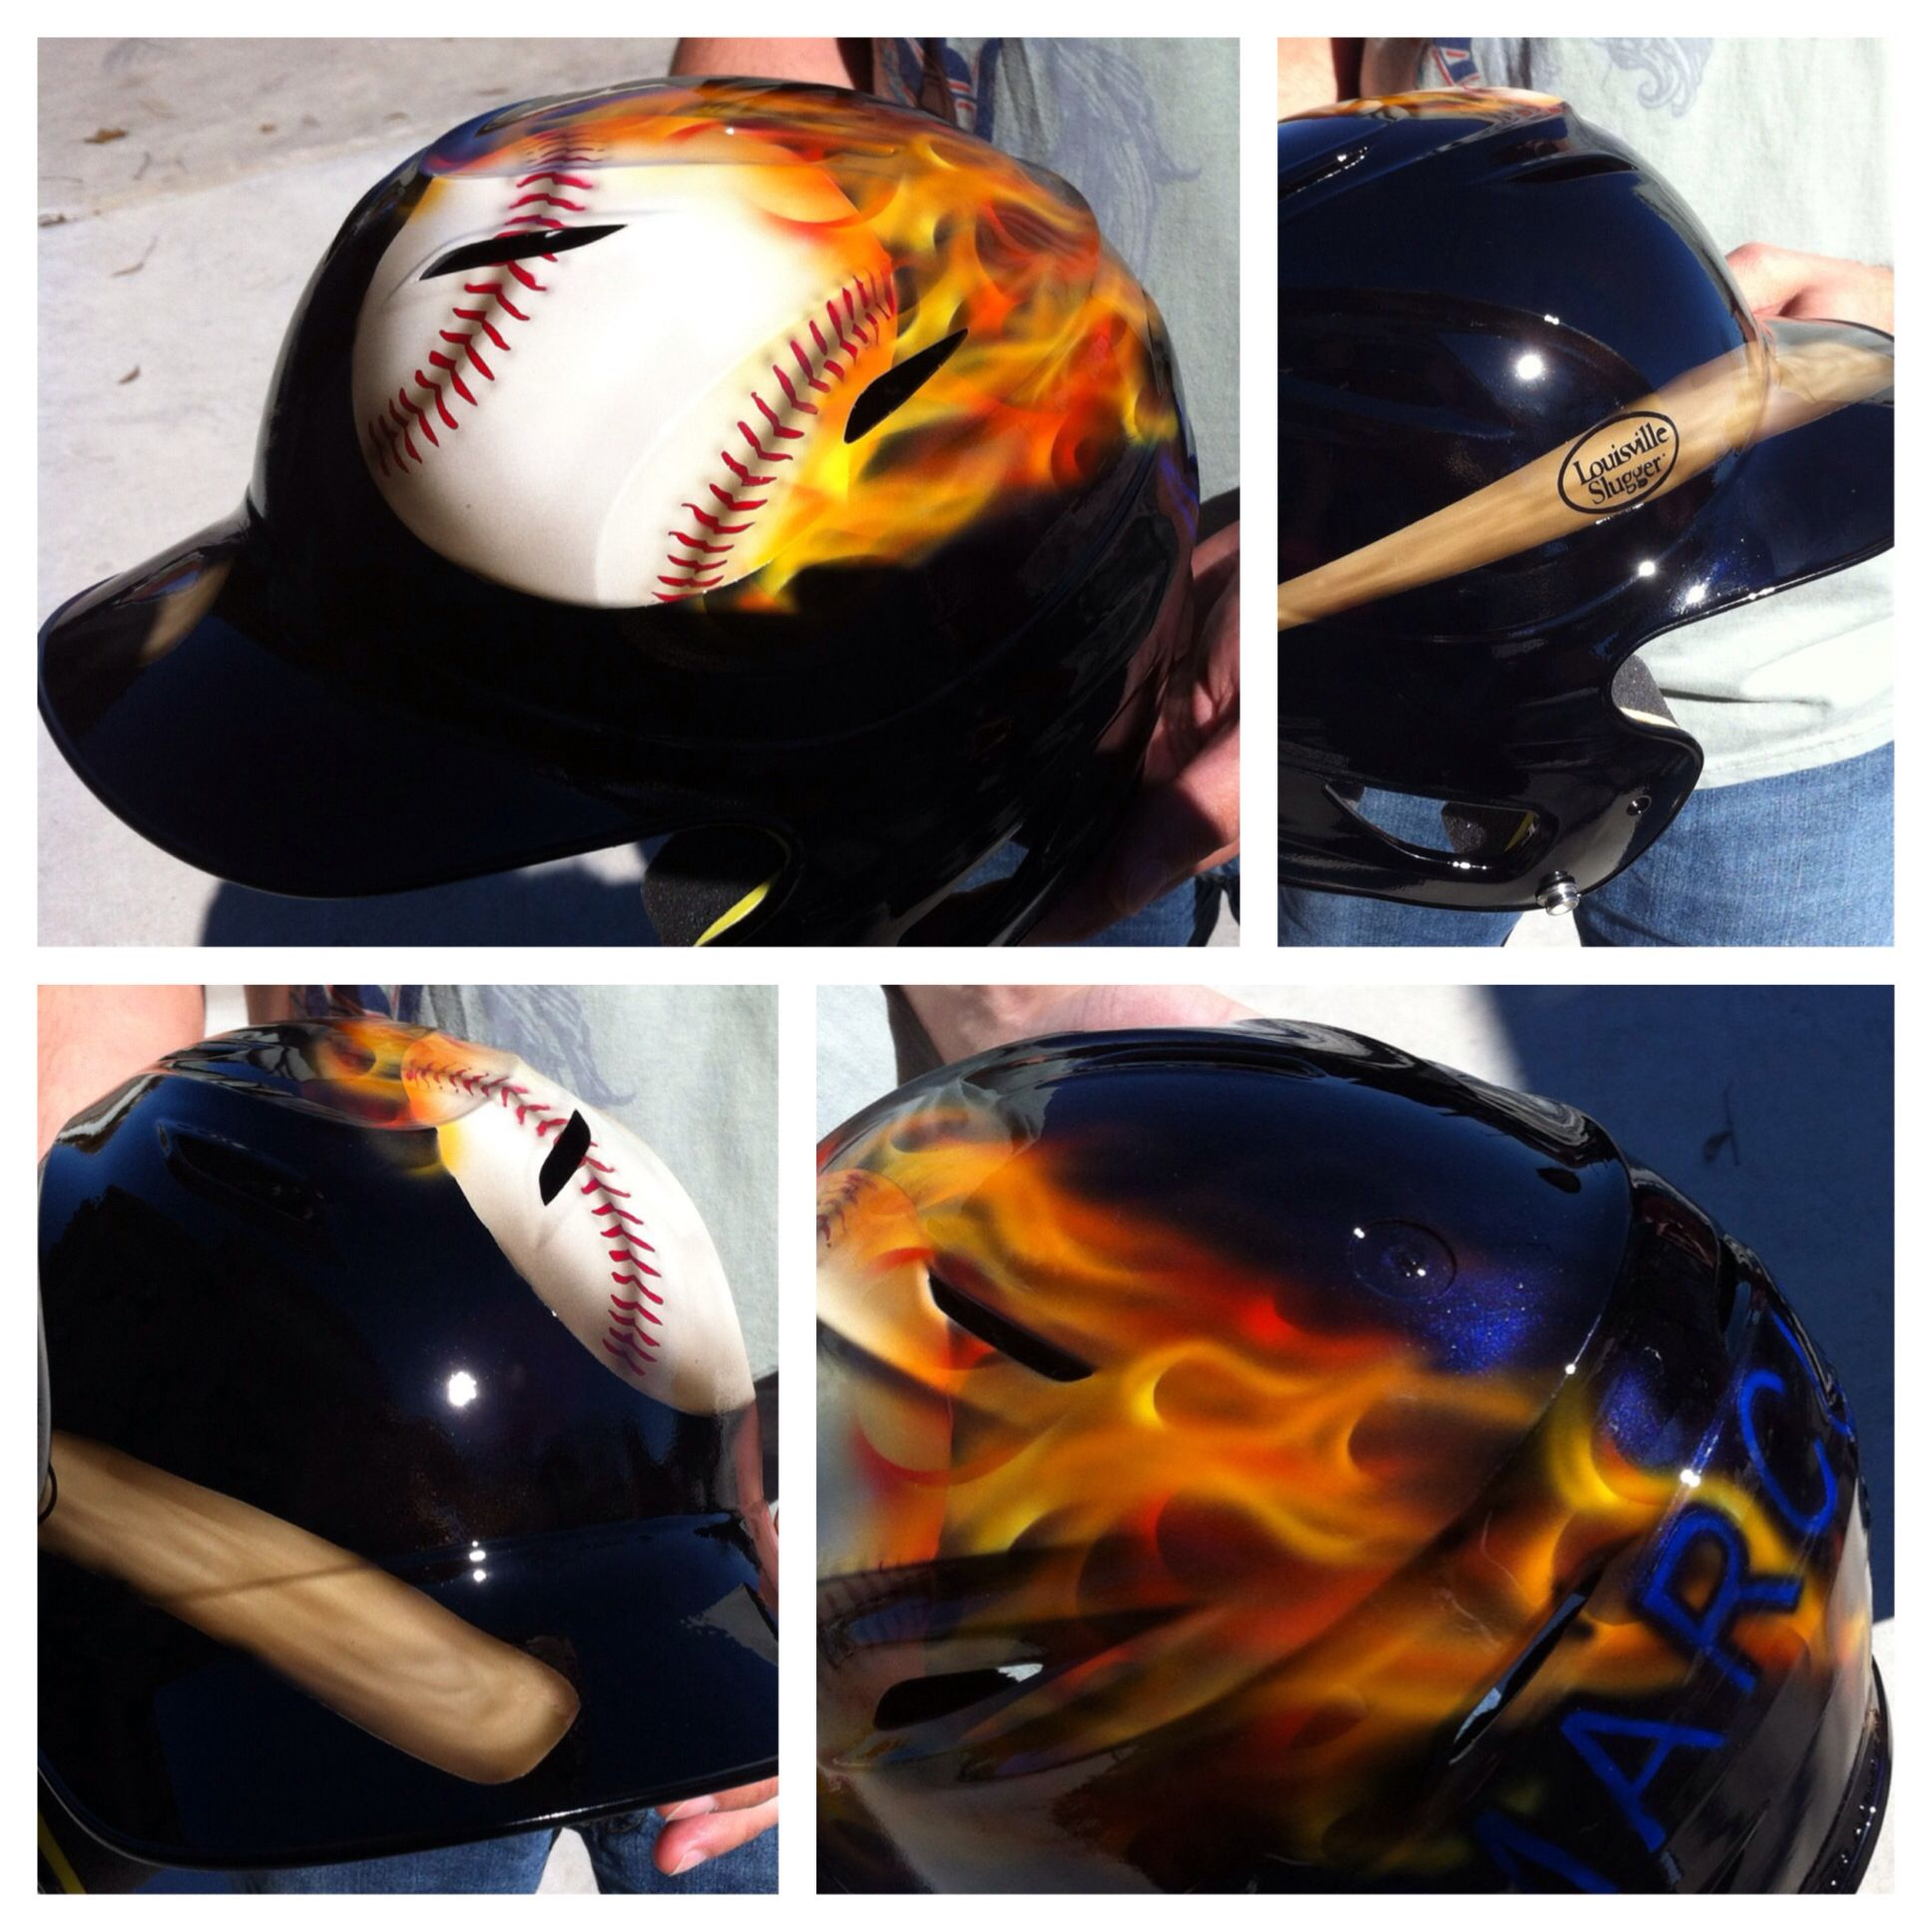 Custom airbrush baseball helmet by Kris Dean